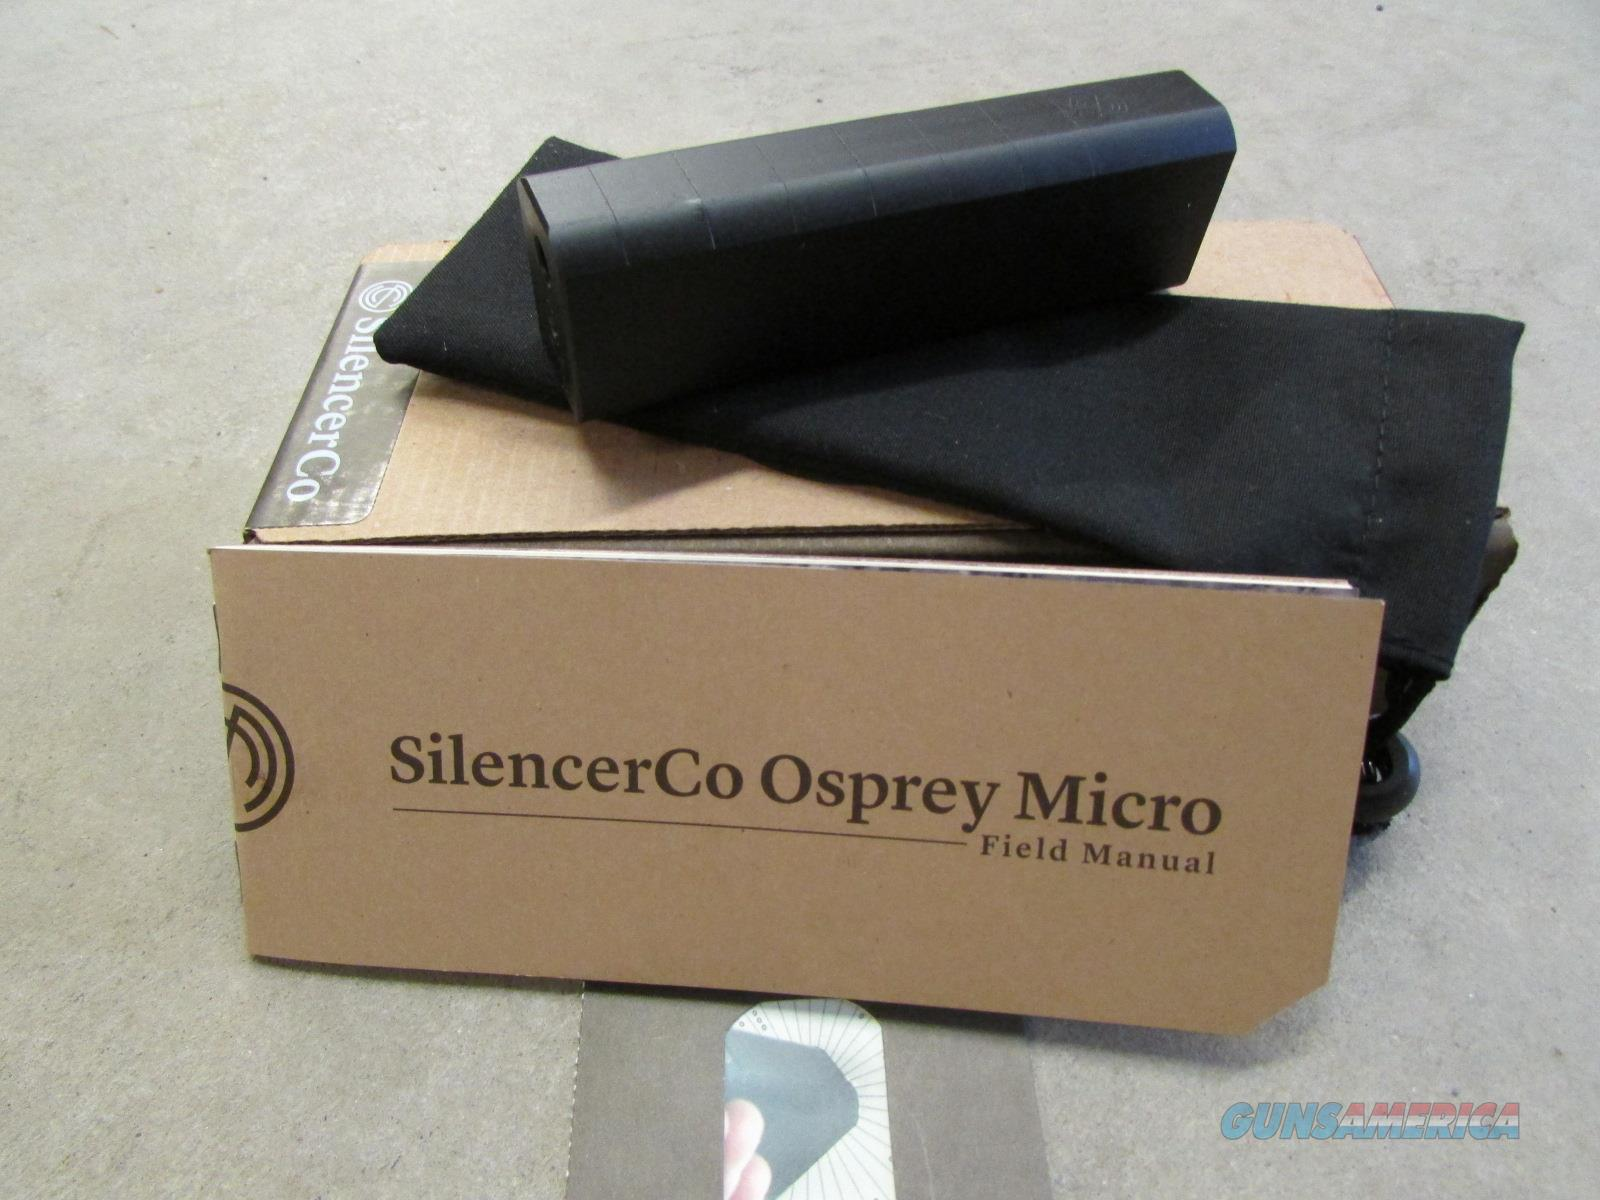 SILENCERCO OSPREY MICRO .22 LR SILENCER/SUPPRESSOR SU-1504   Guns > Rifles > Class 3 Rifles > Class 3 Suppressors